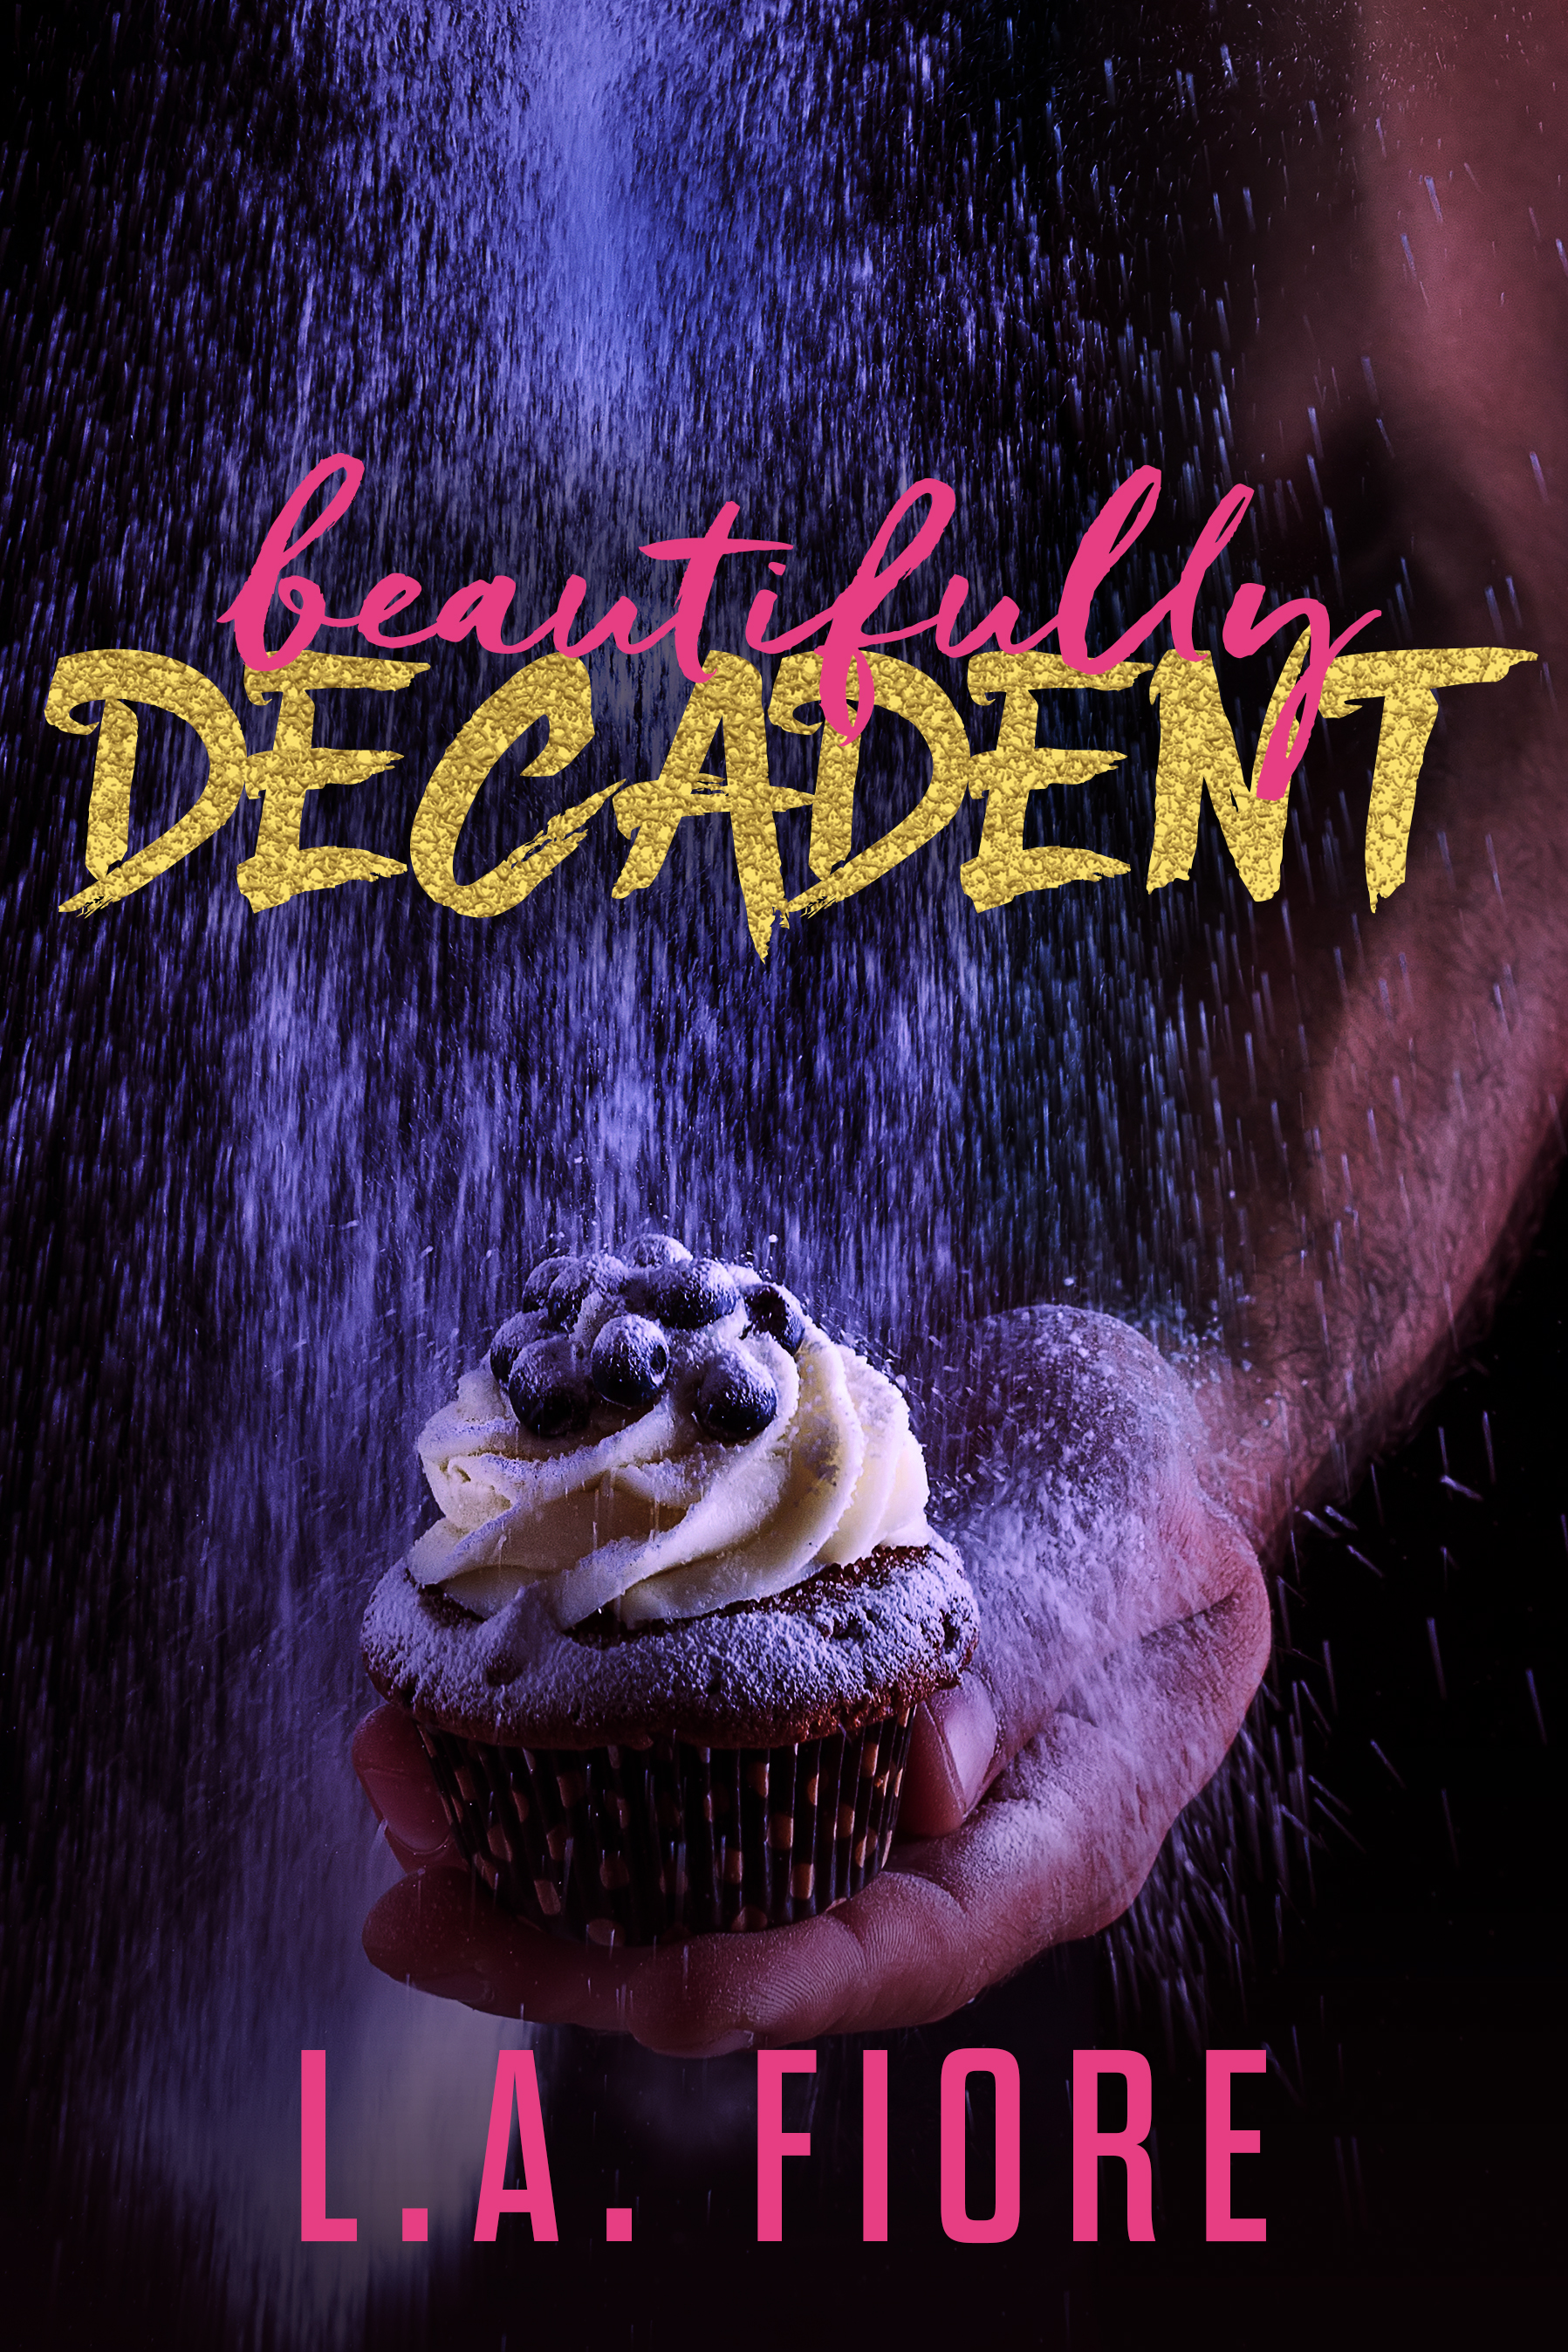 REVIEW: Beautifully Decadent by L.A. Fiore